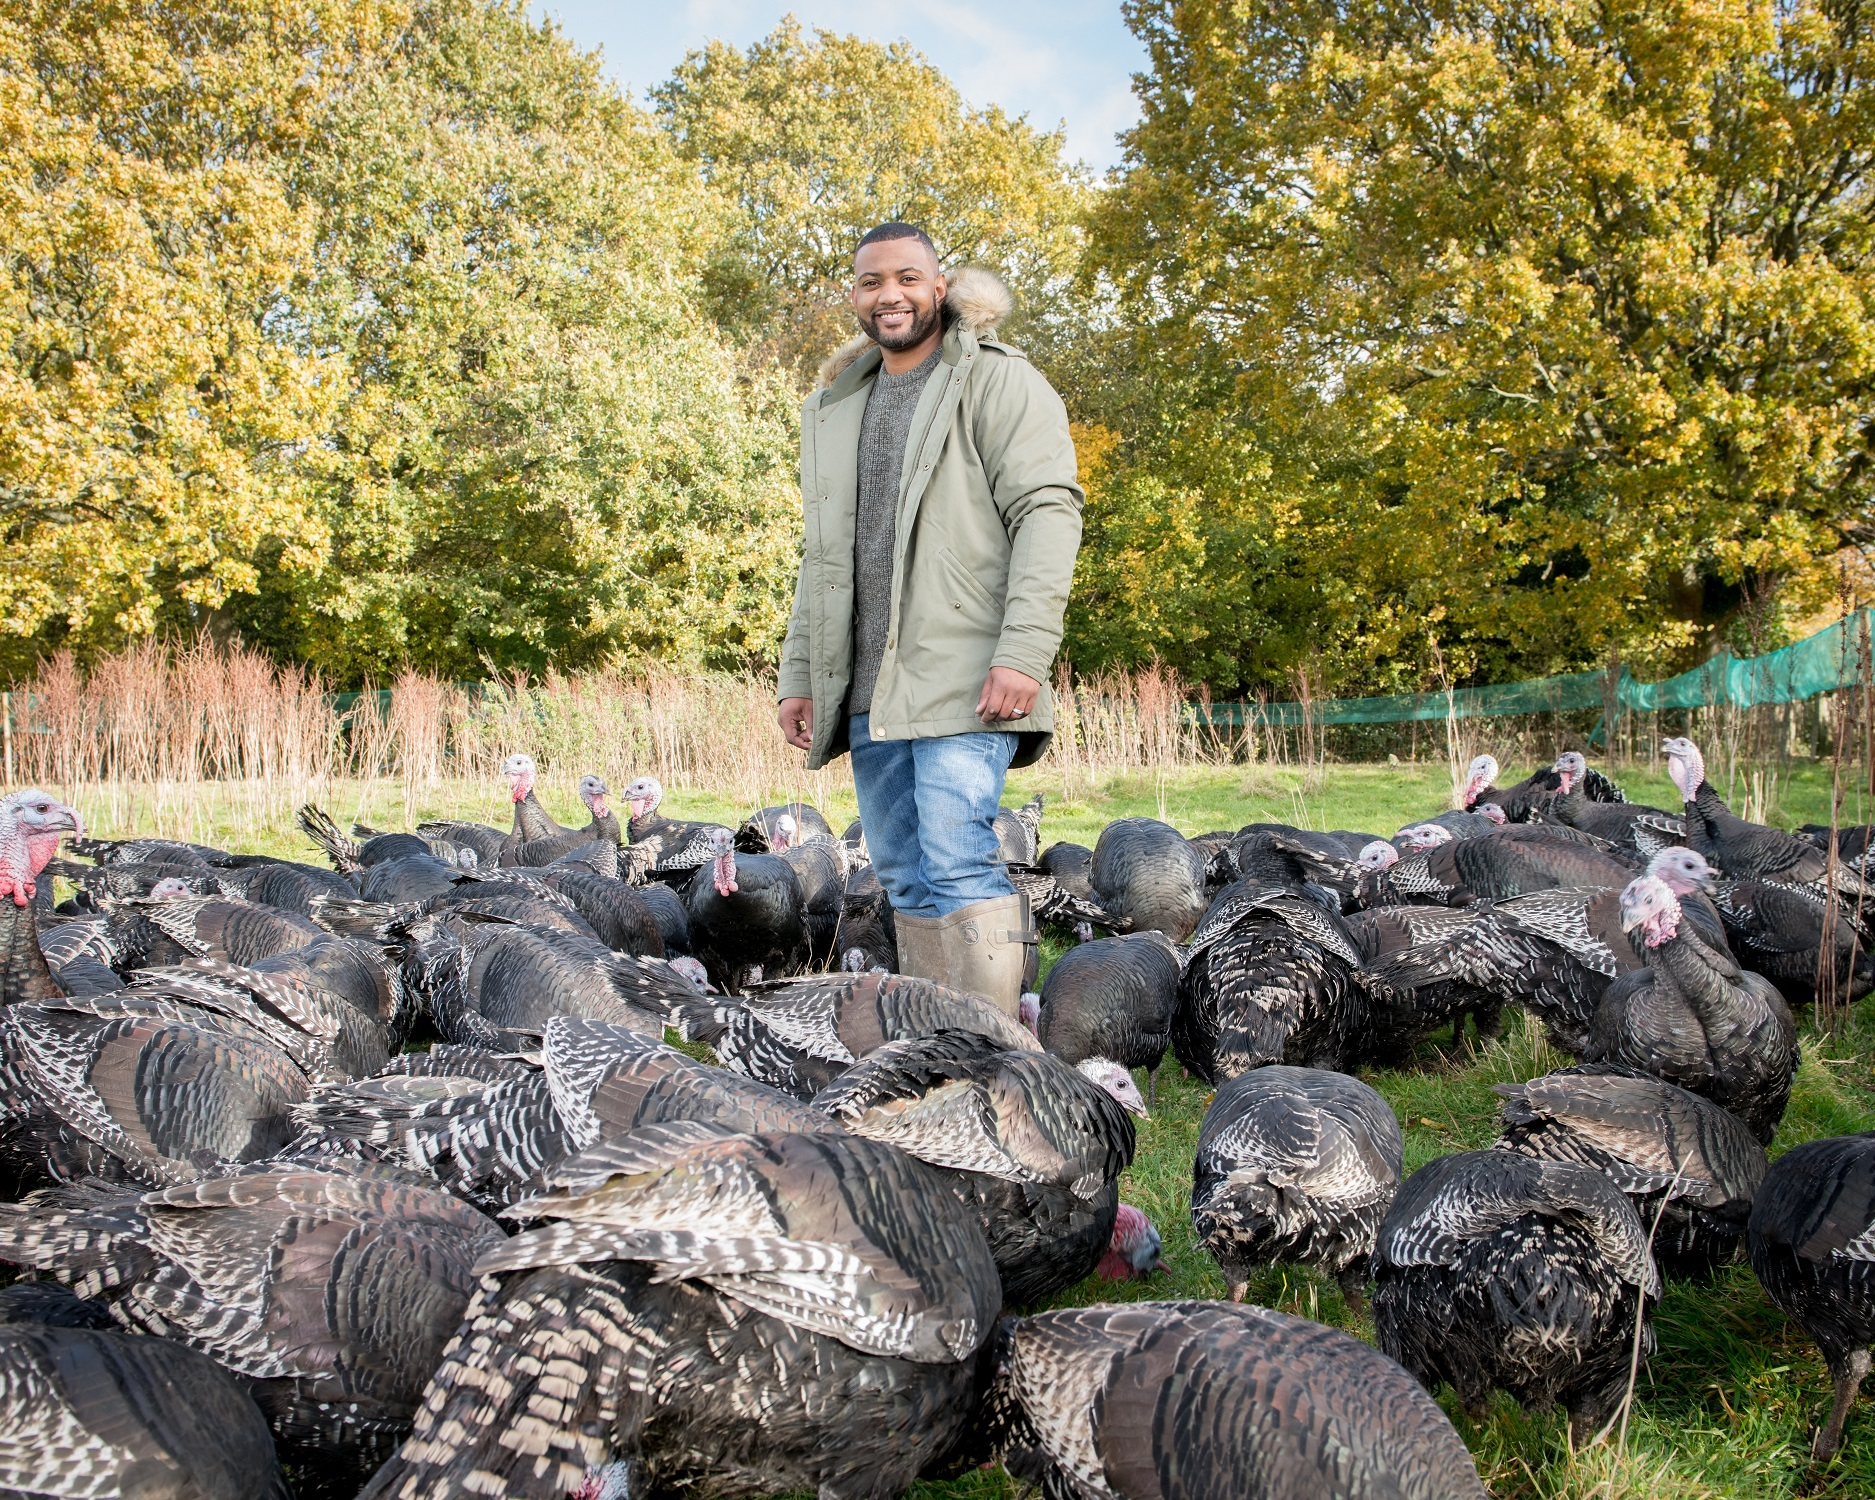 TV presenter and turkey farmer JB Gill has given his support to Barclay's campaign to inspire more young people to take up farming careers